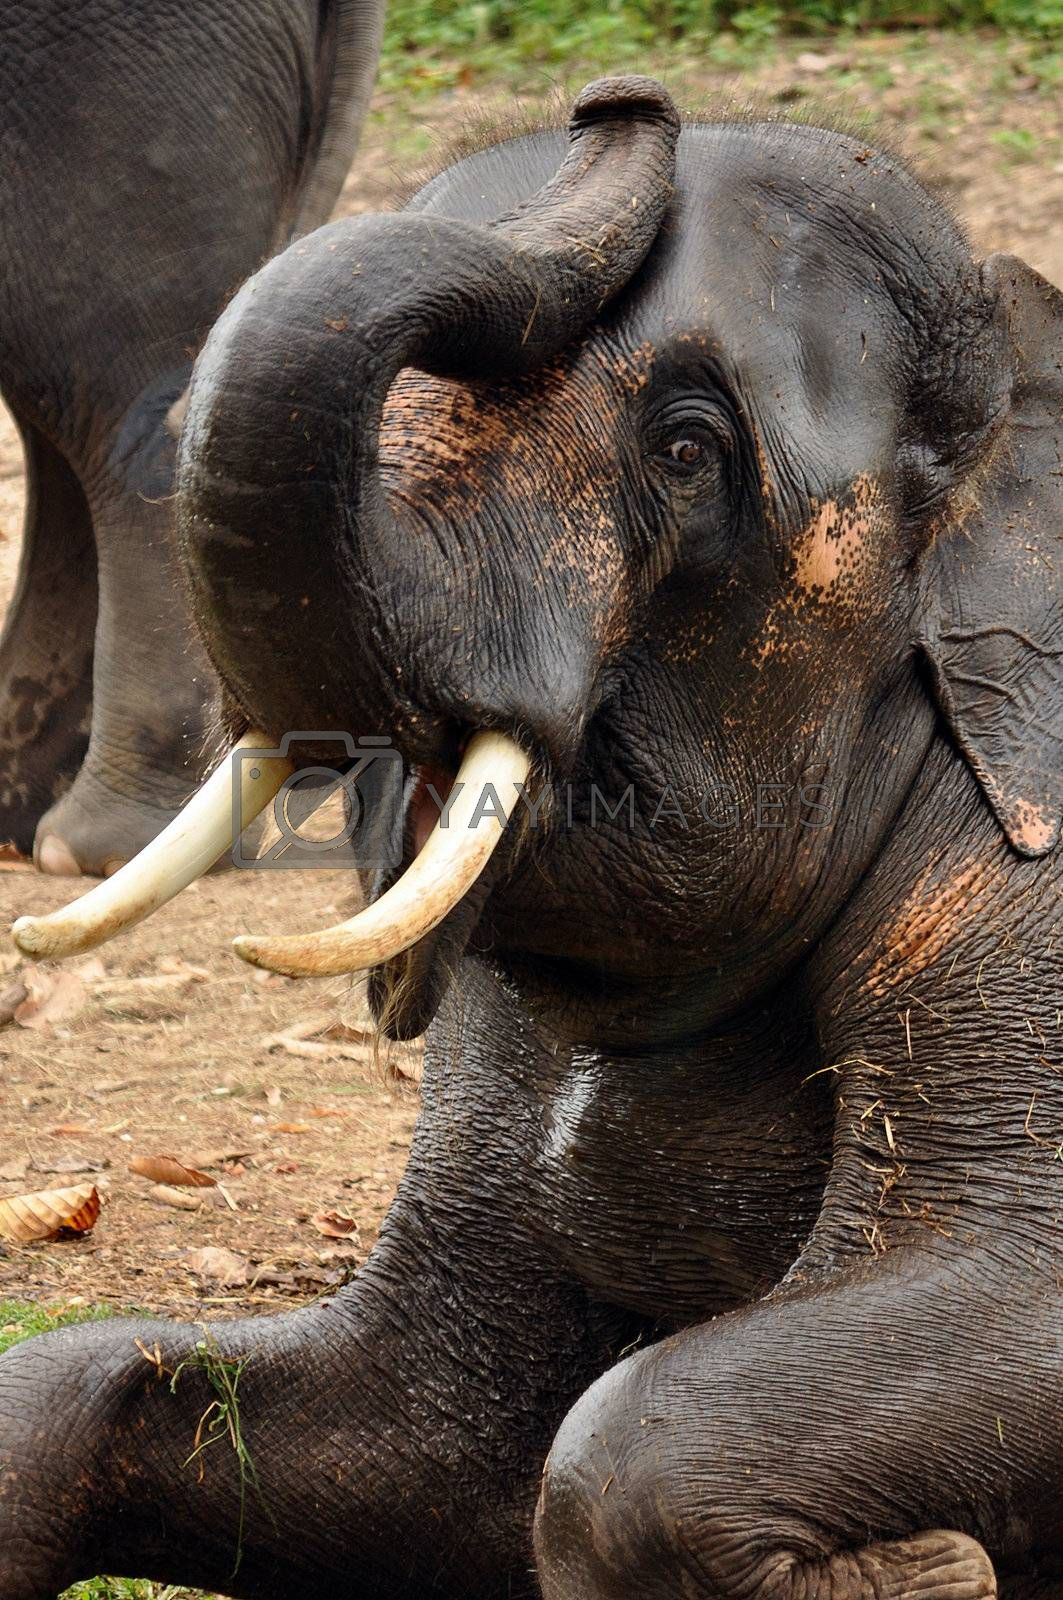 Asian elephants are rather long-lived, with a maximum recorded life span of 86 years.